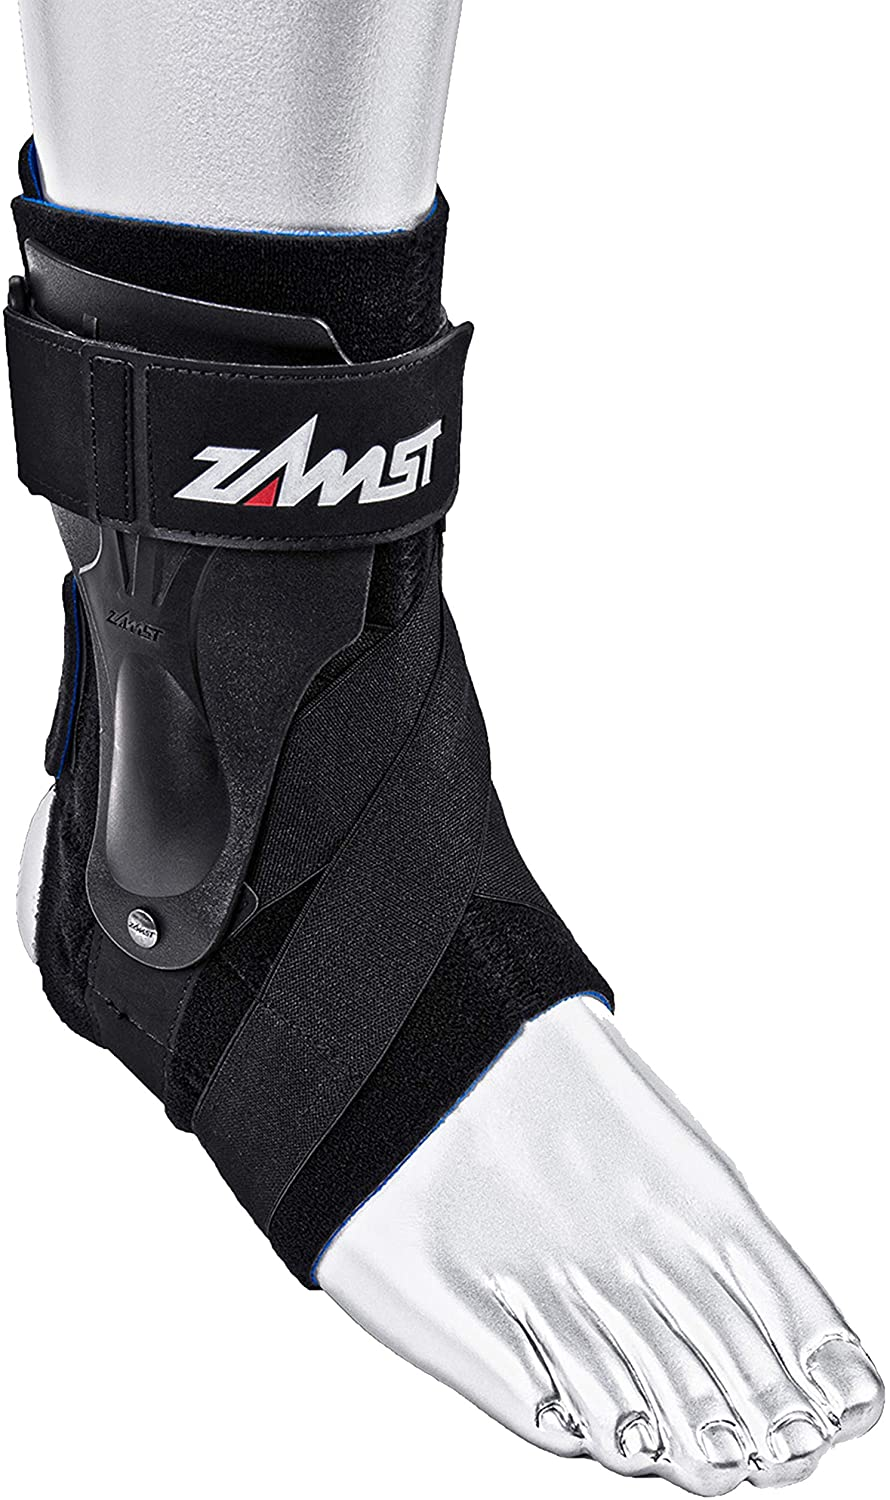 Best Ankle Brace To Prevent Rolling In 2021